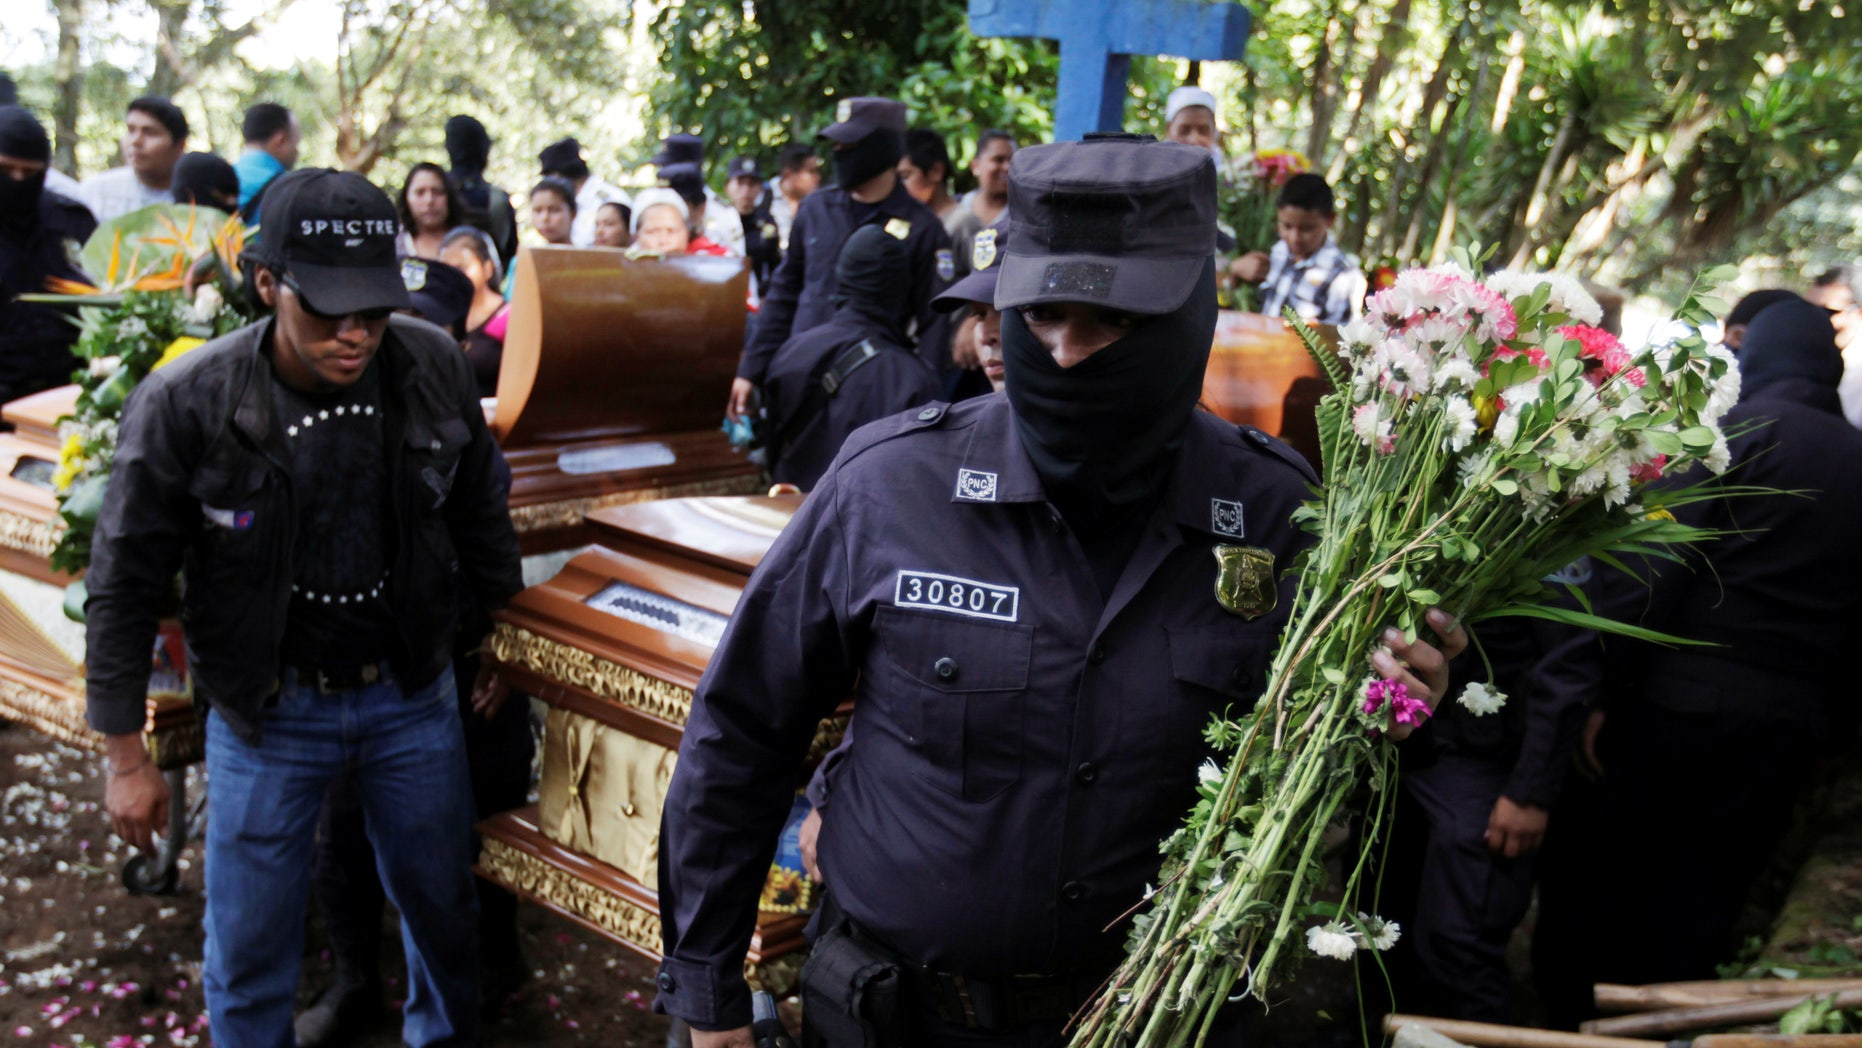 Salvadoran police officers participate in the funeral ceremony for their colleague Lorenzo Rojas Herrera and his son Marvin, who were killed by suspected gang members.